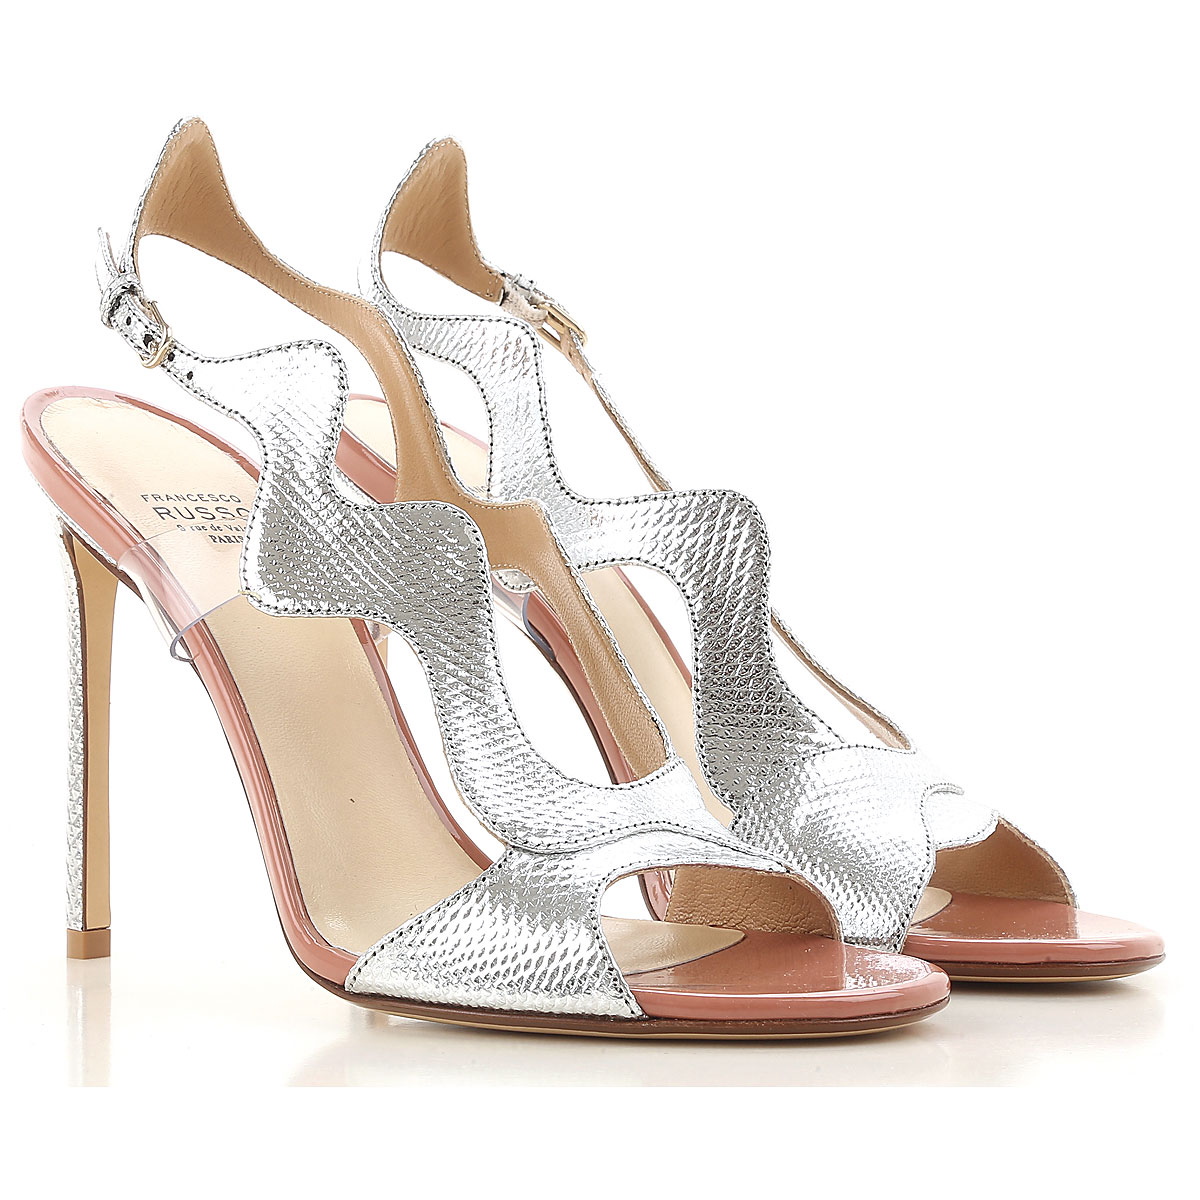 Francesco Russo Sandals for Women On Sale in Outlet, Silver, Leather, 2019, 6 8 8.5 9